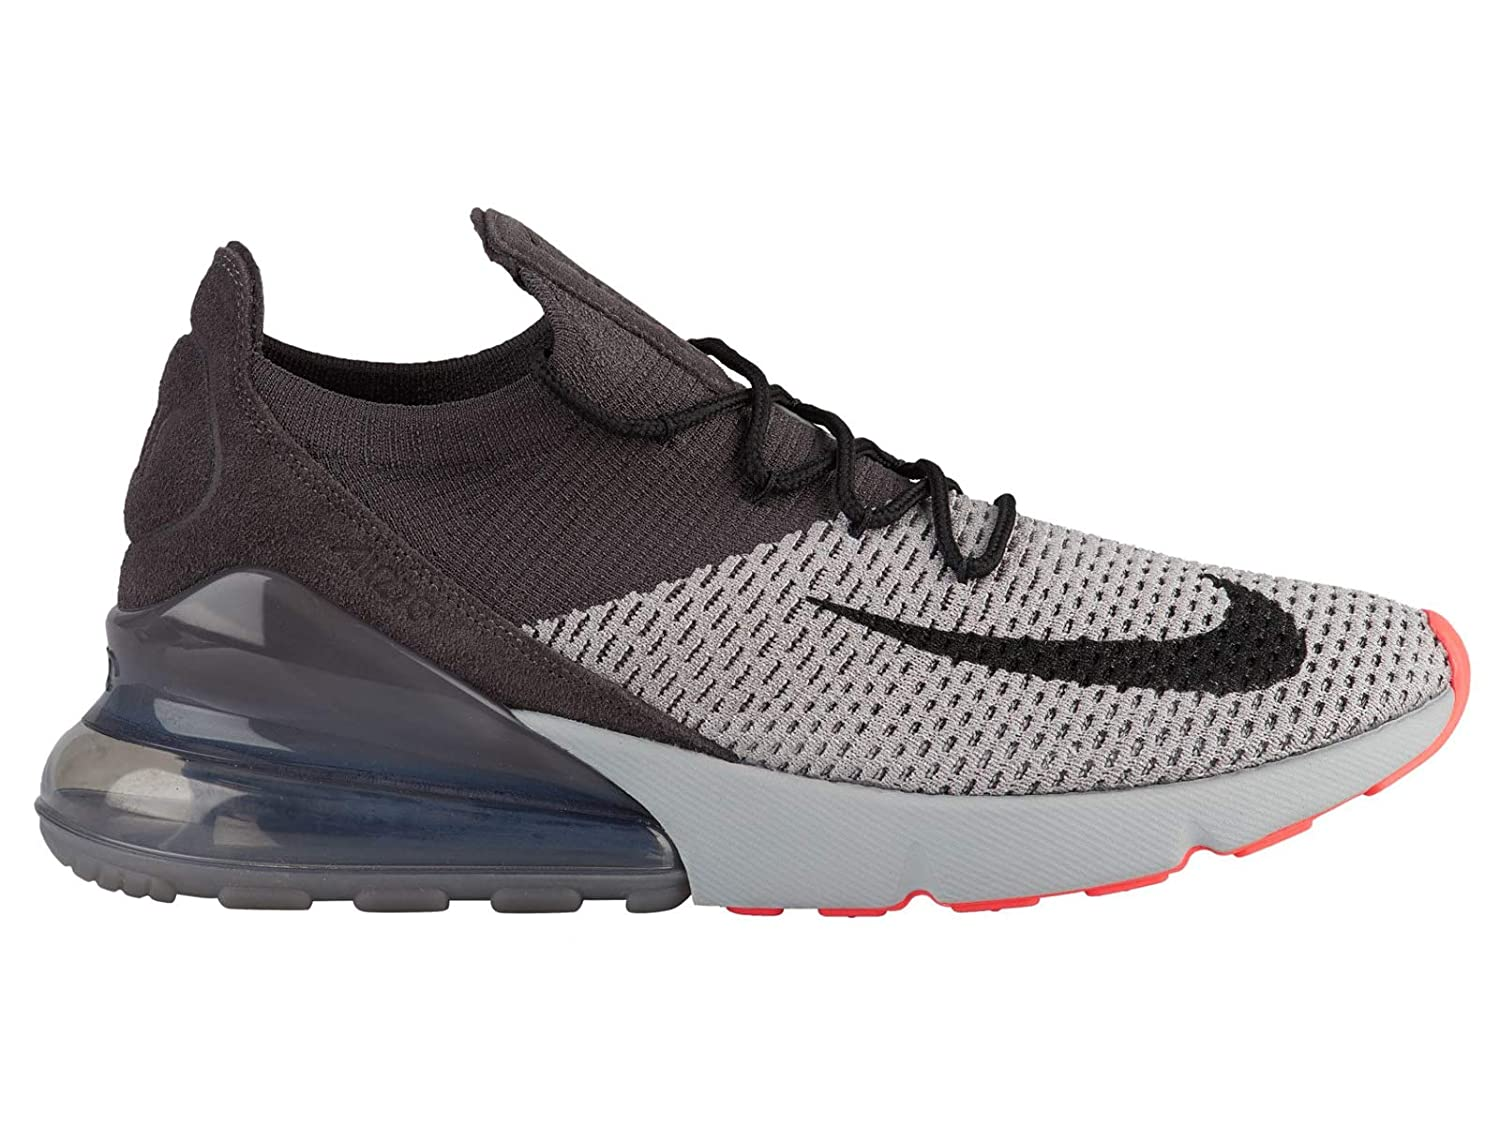 buy popular a84c3 0fb91 Amazon.com   Nike Air Max 270 Flyknit - Men s Atmosphere Grey Hyper  Punch Thunder Grey Nylon Training Shoes 10.5 D(M) US   Road Running